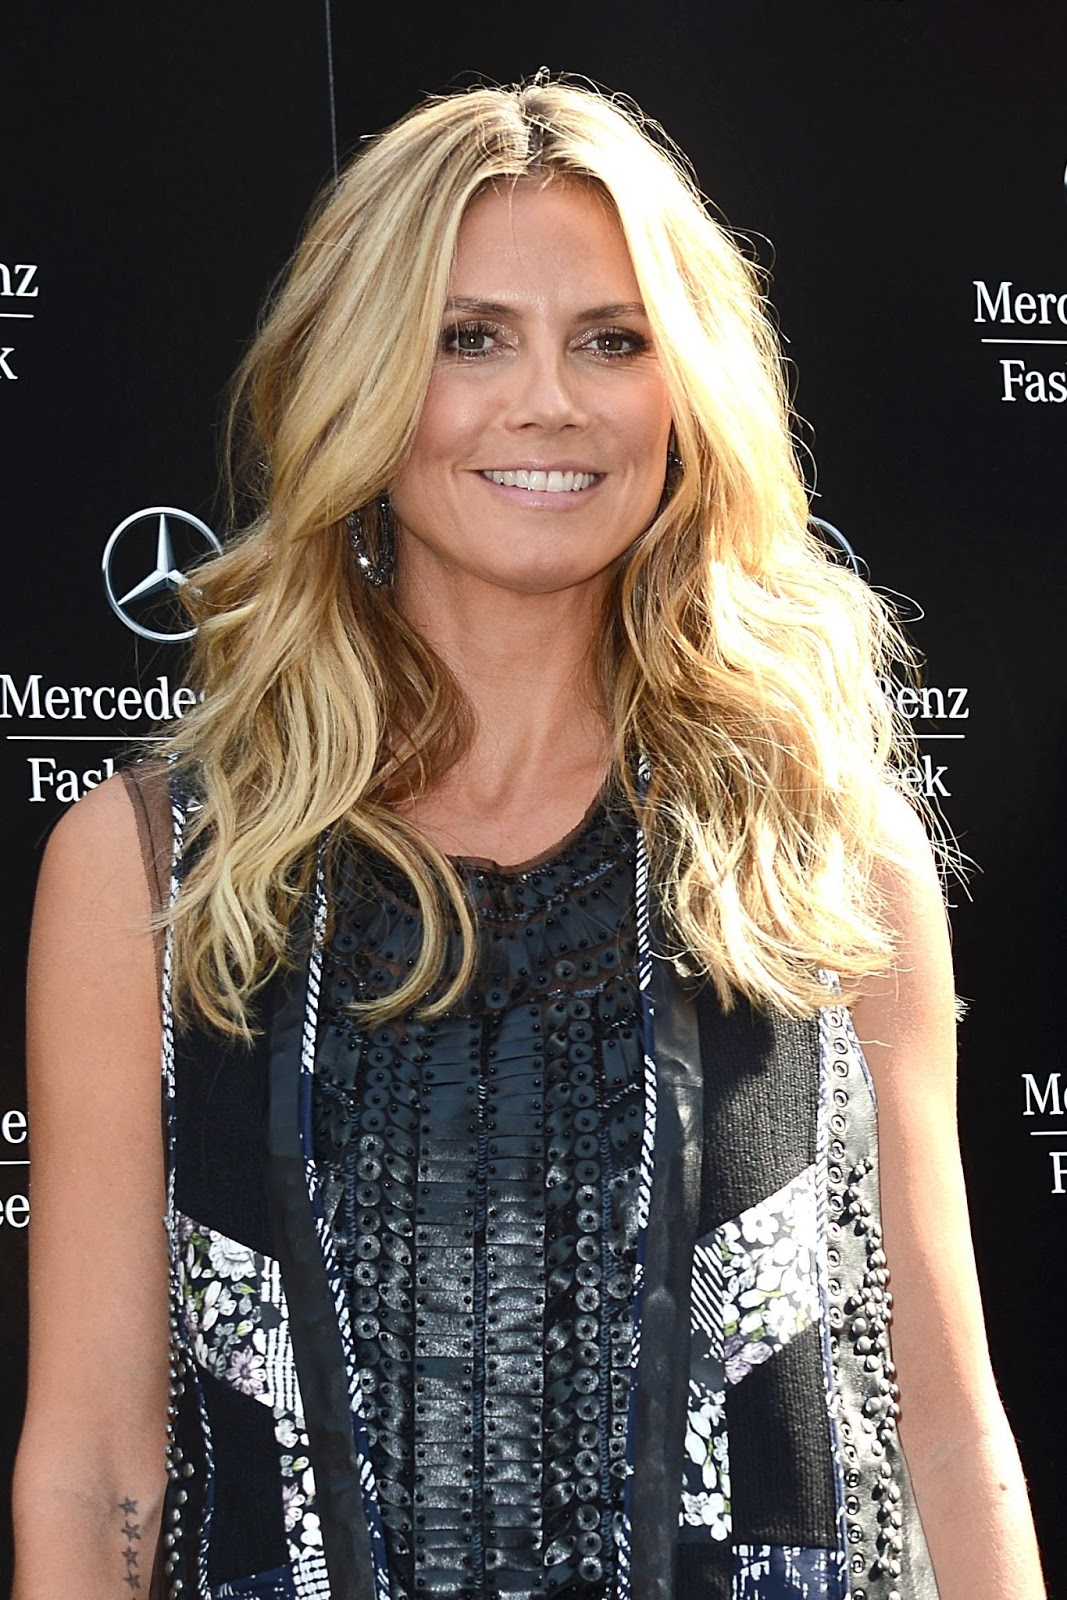 heidi klum  heidi klum at bcbg max azaria spring 2014 fashion show  nyc  sept 5  2013